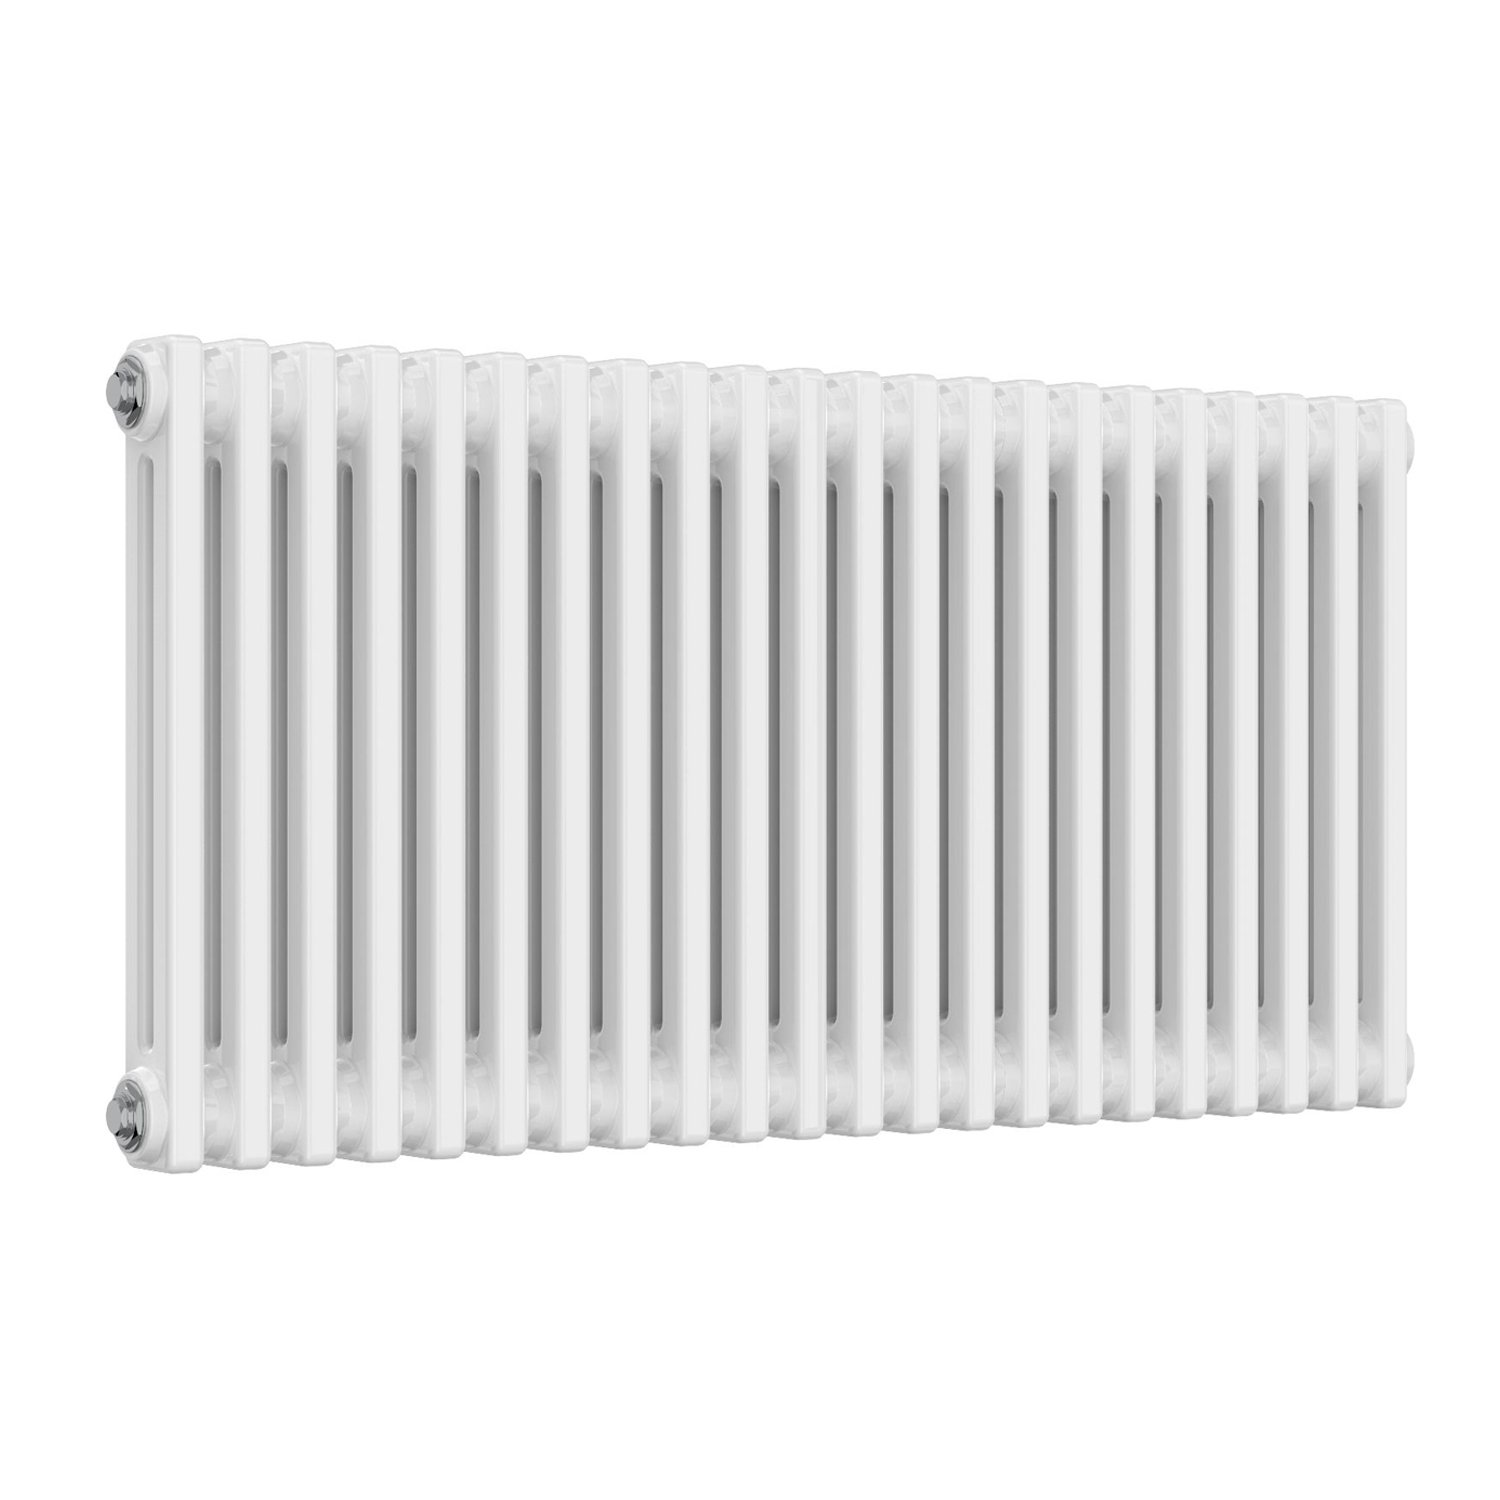 Stelrad Radical Radiator 500mm H x 600mm W Single Convector 10mm Straight TRV-0